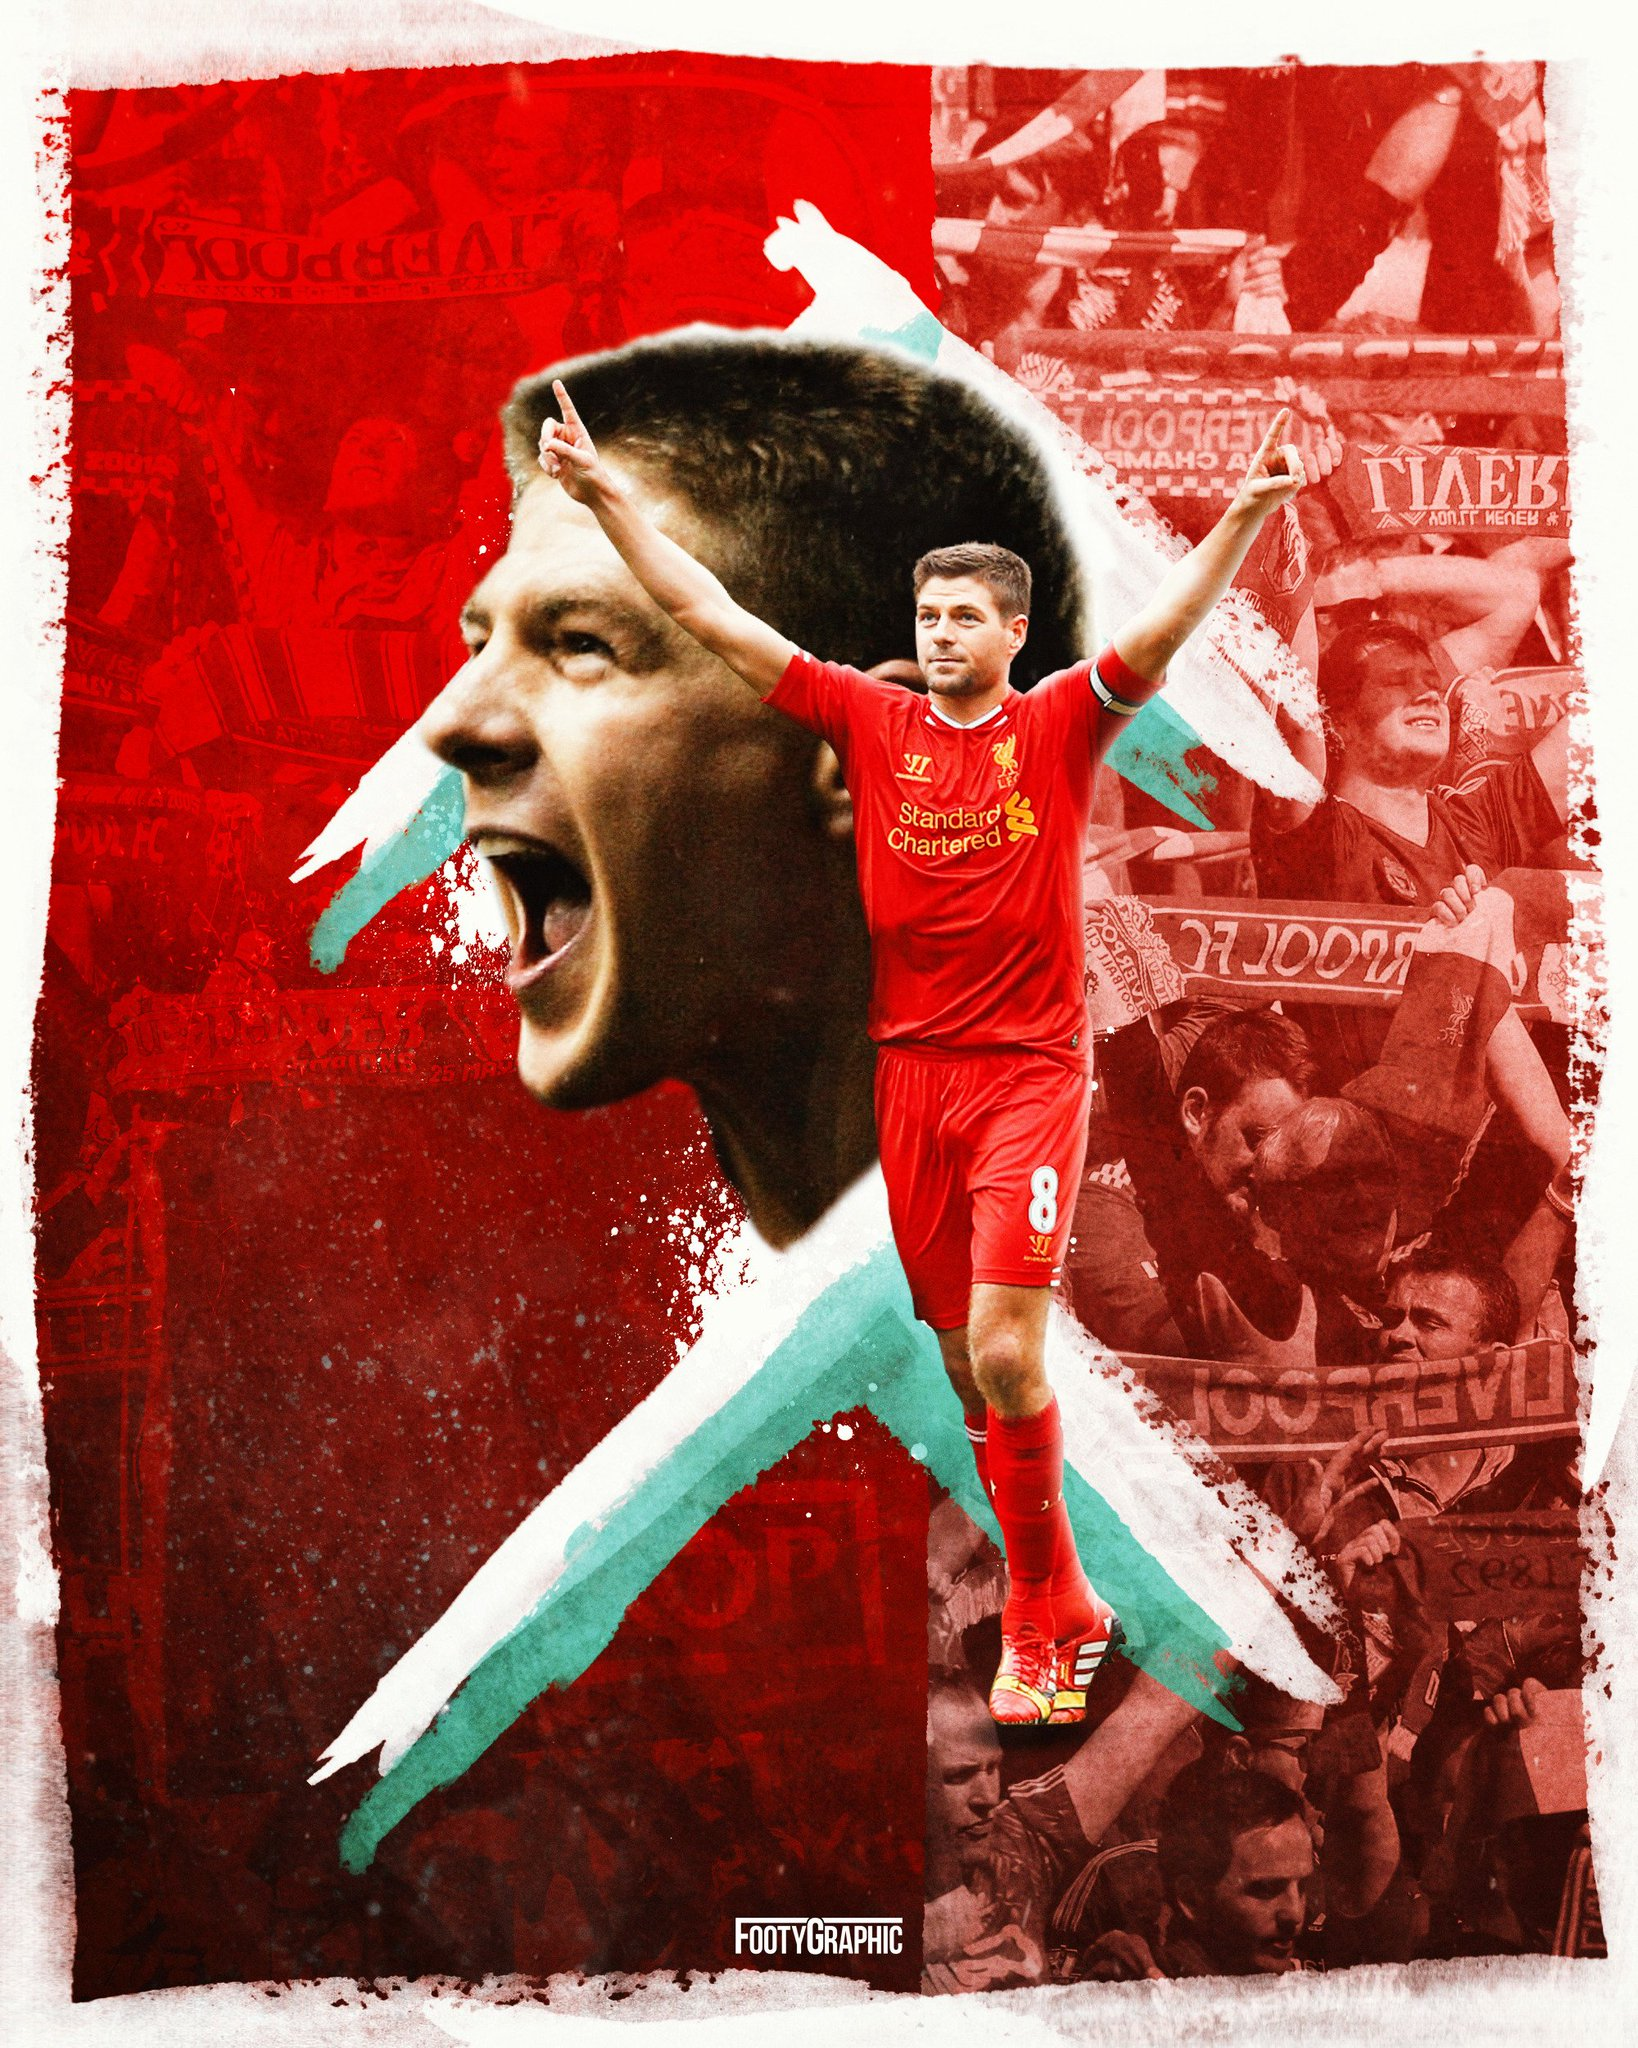 Happy birthday to Steven Gerrard!